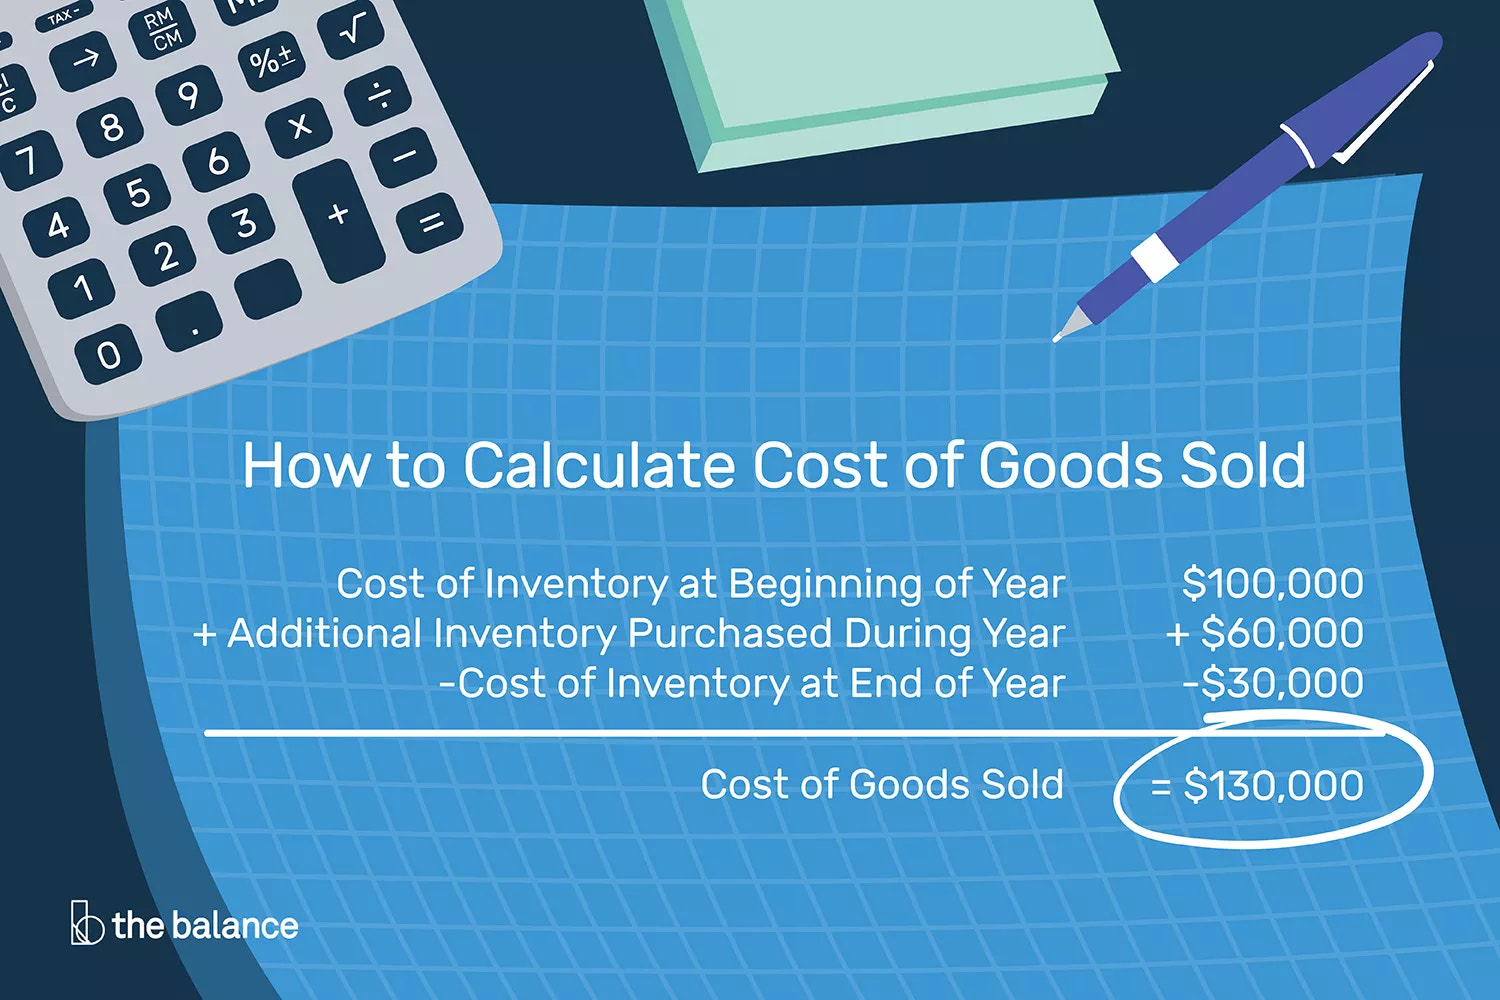 How to Calculate Cost of Goods Sold for Retailers